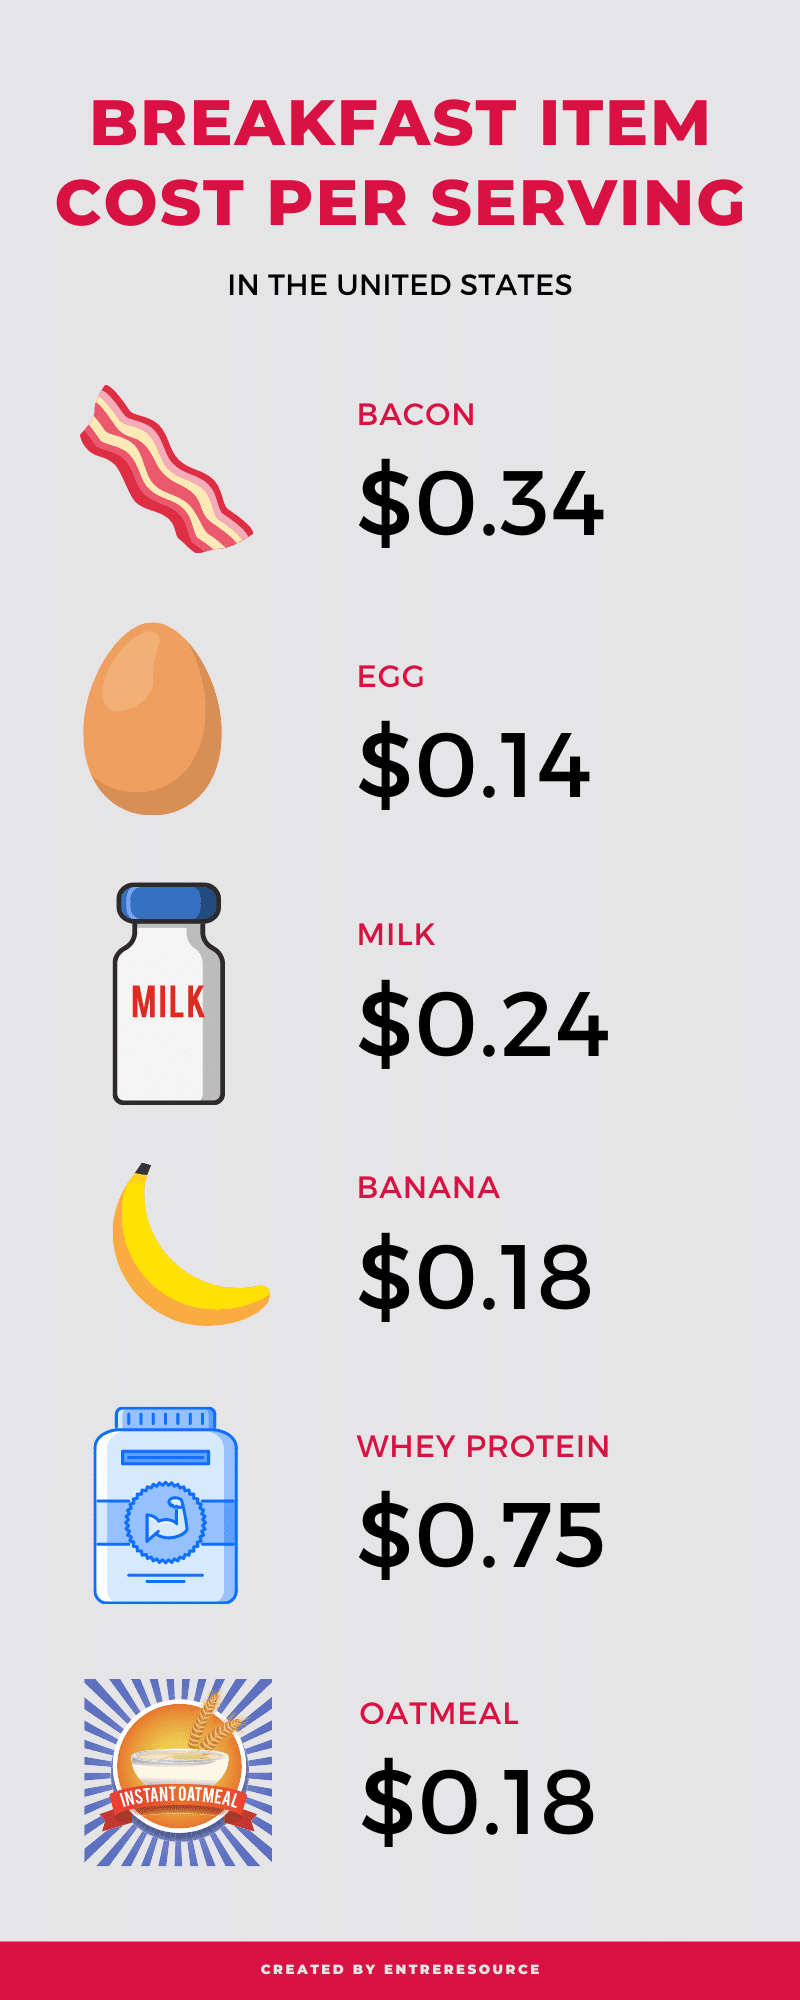 Breakfast Cost per Serving Infographic